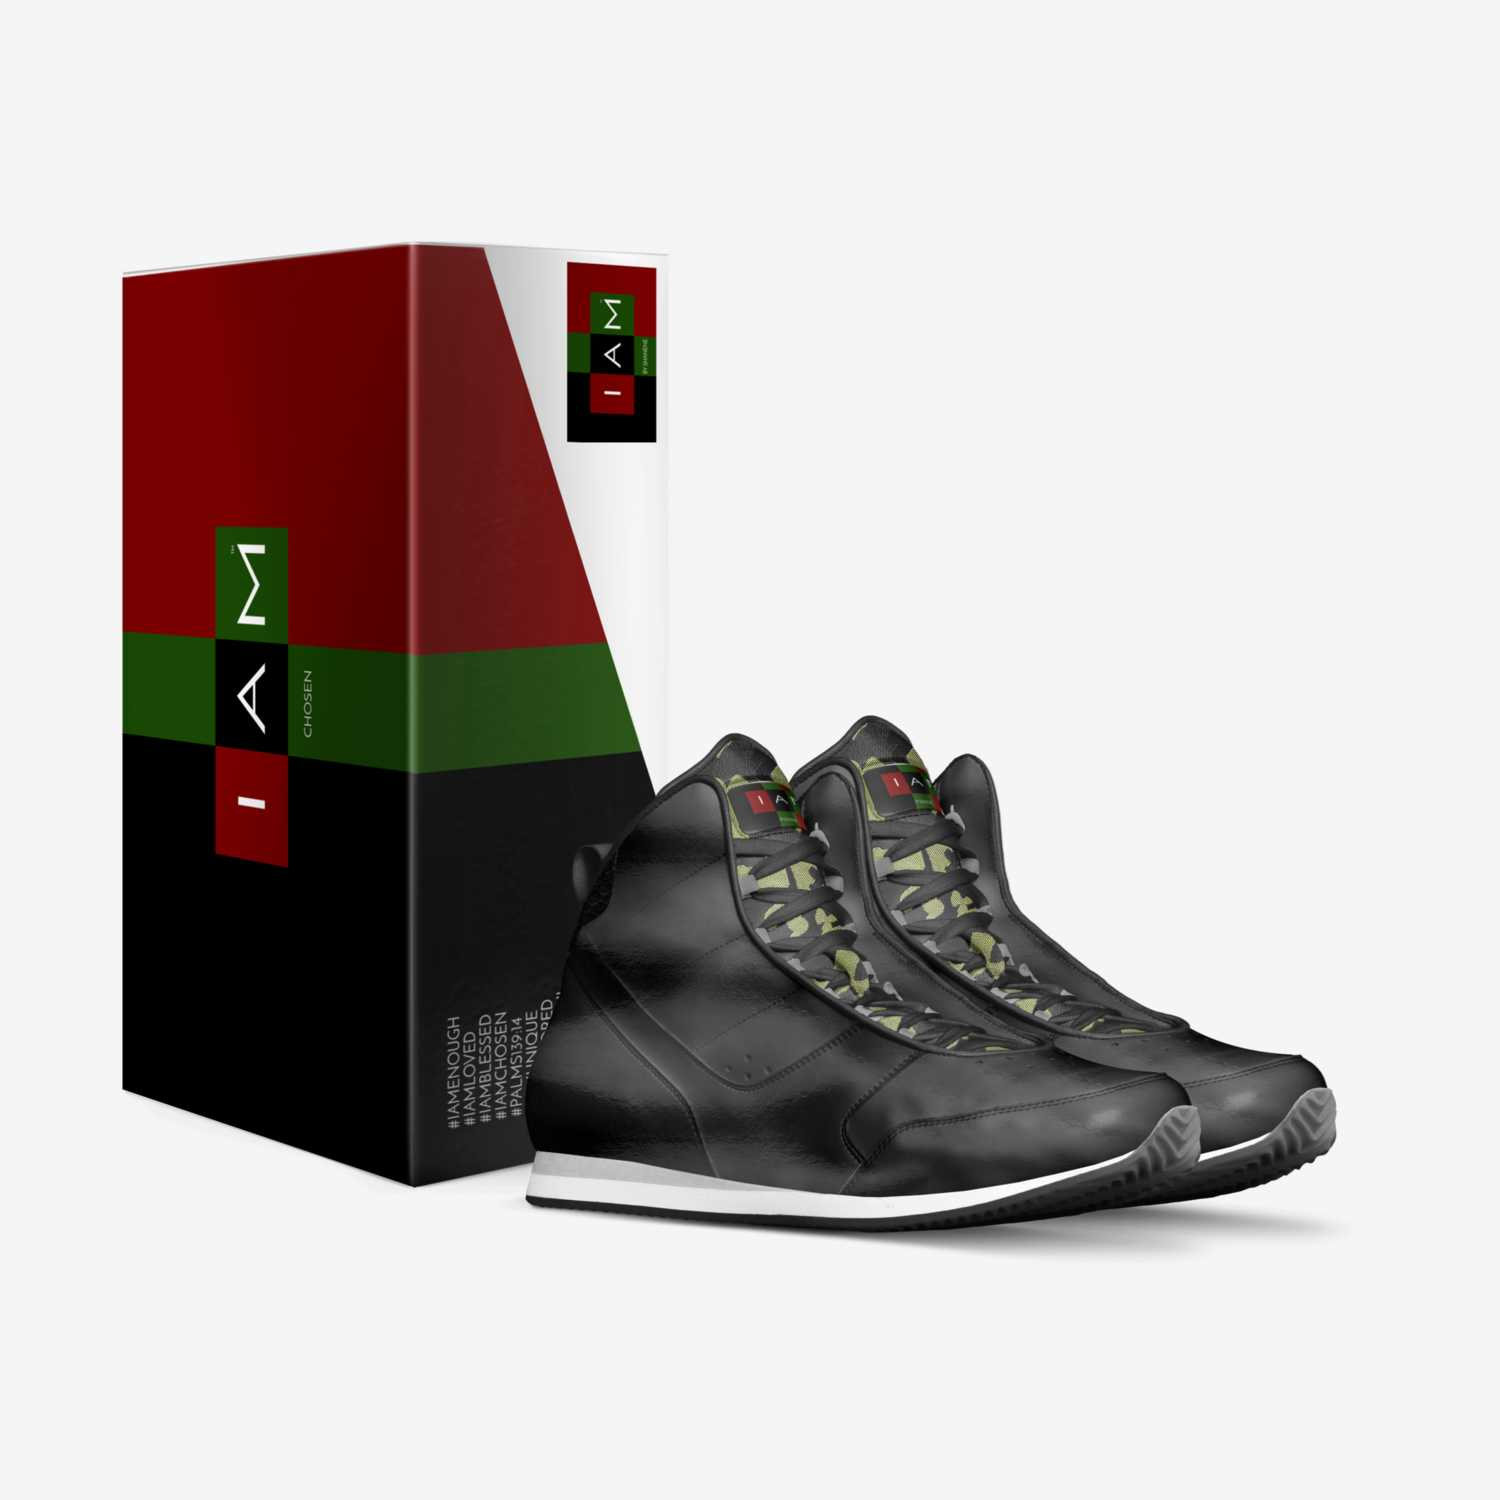 #IAMCHOSEN custom made in Italy shoes by Shanene   Box view